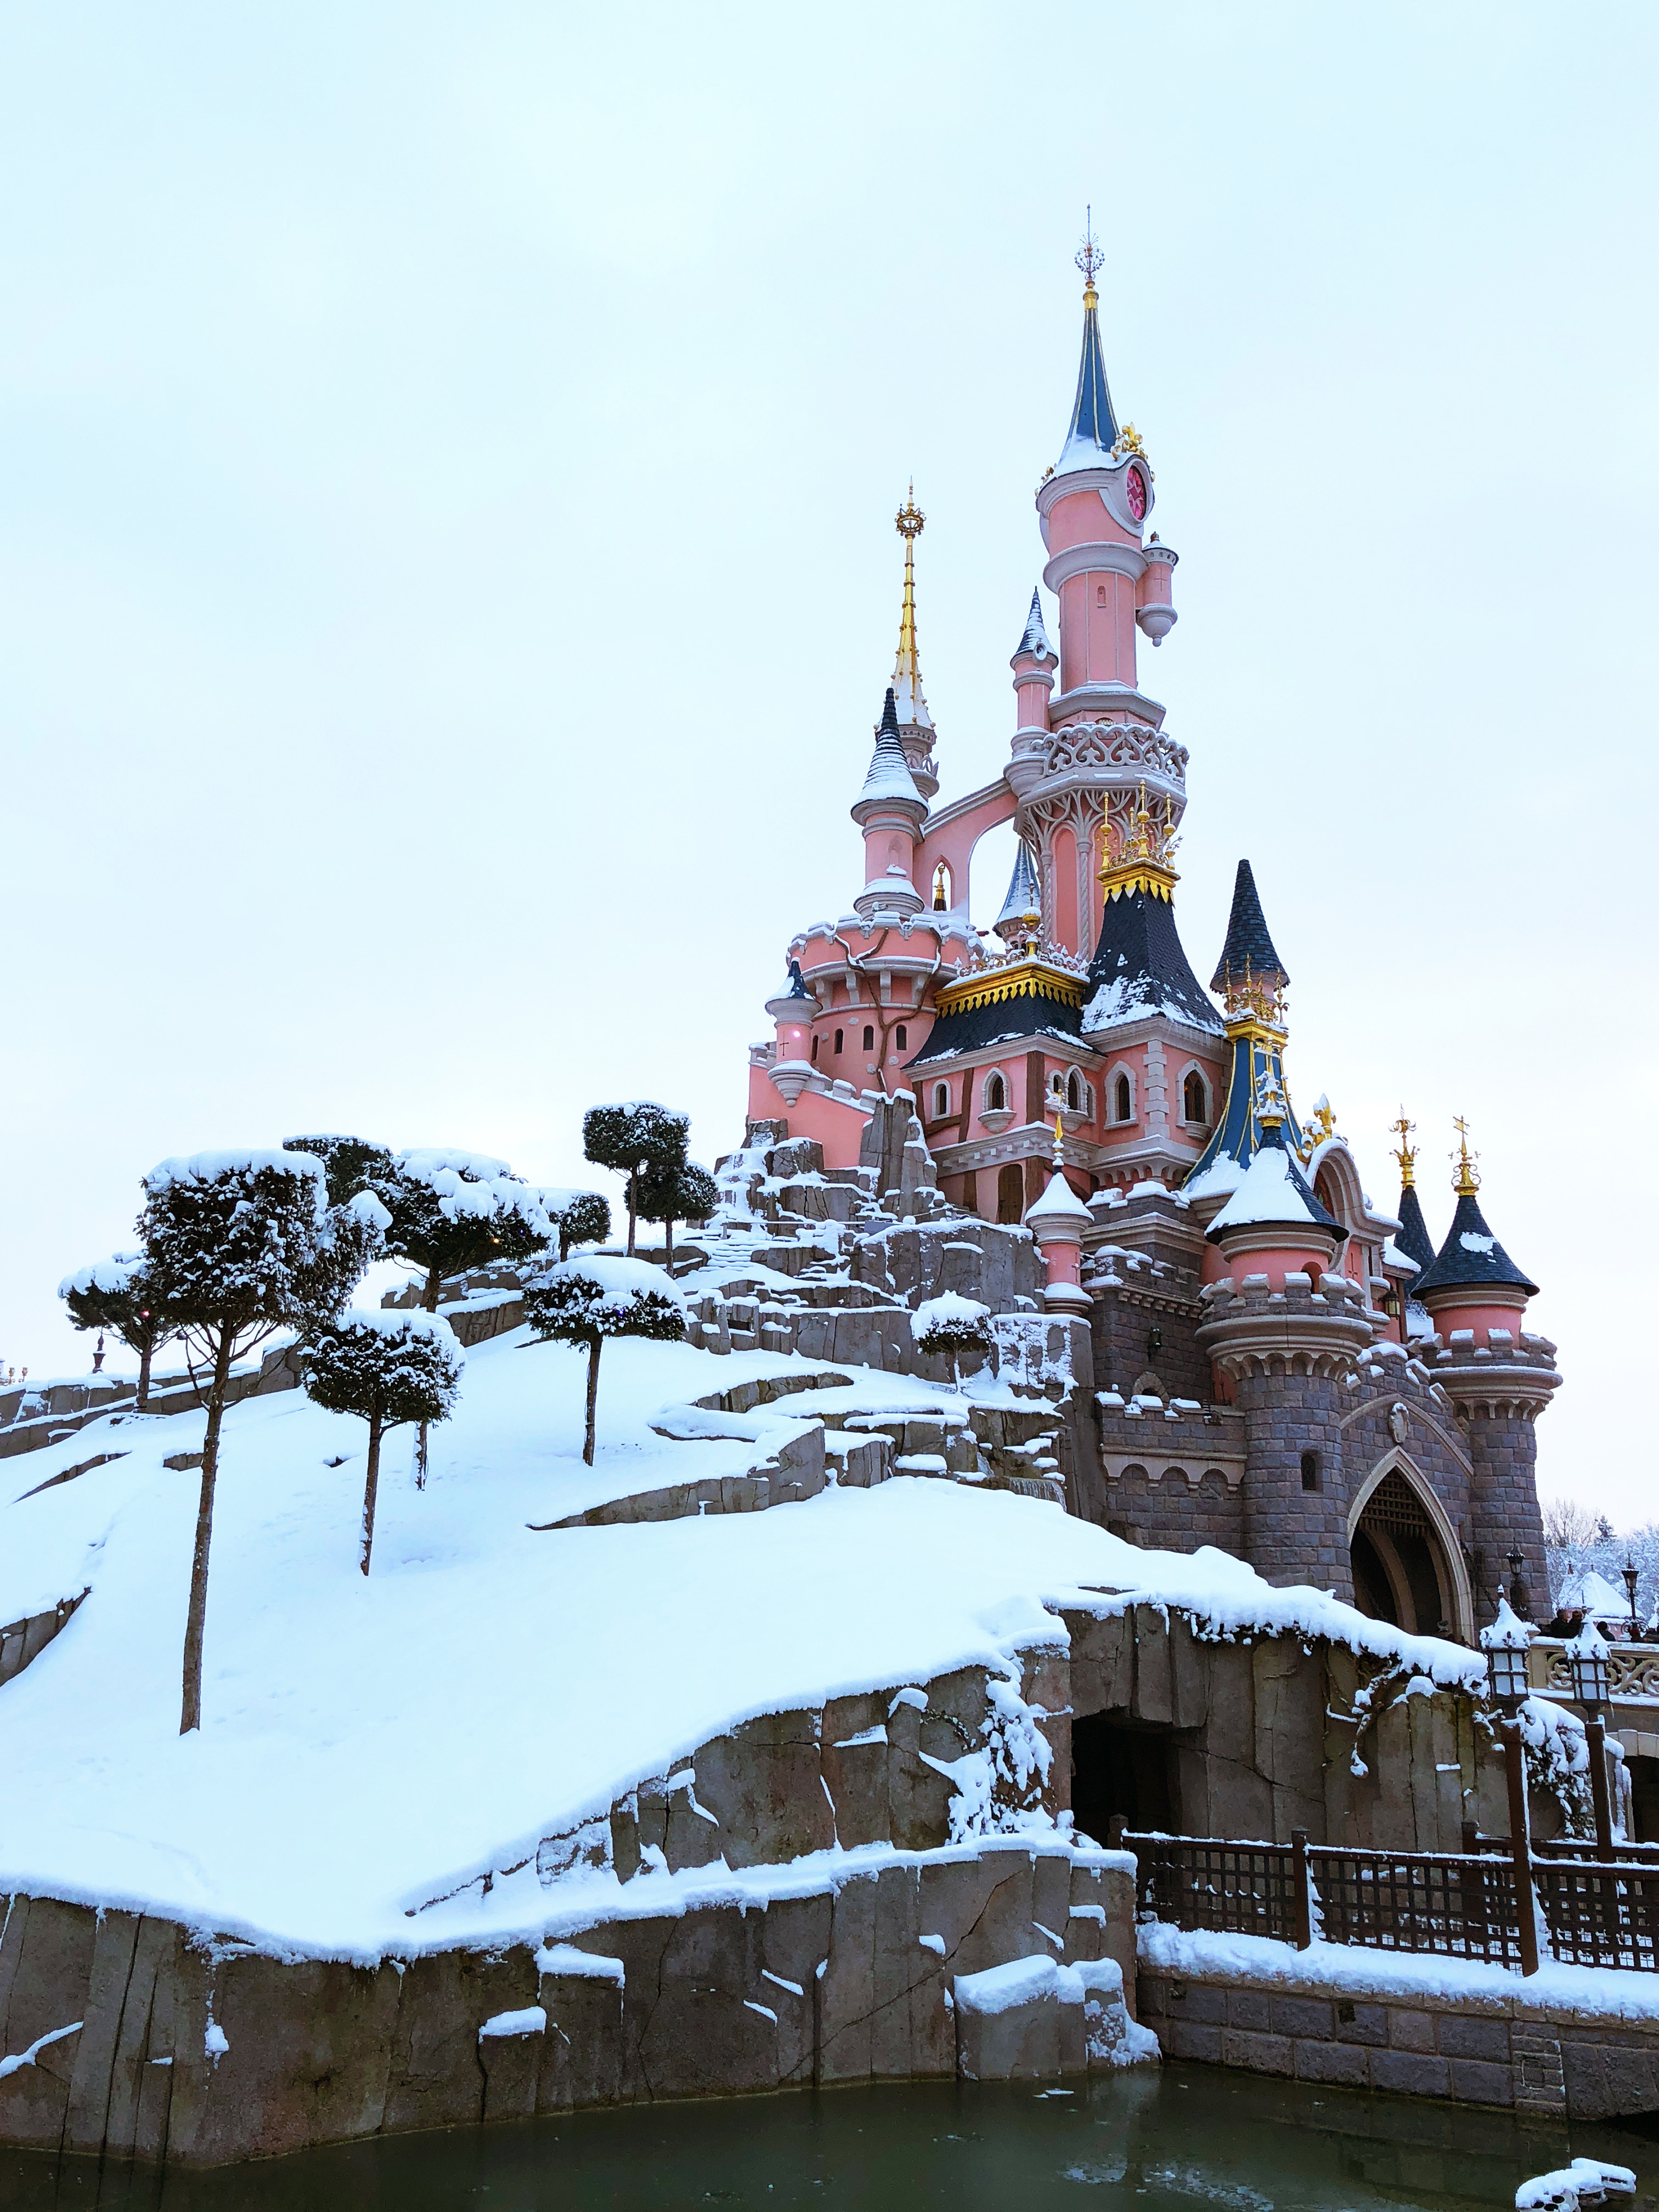 Fall In To Winter Wallpaper The Lurkyloos Do Disneyland Paris In The Snow So You Don